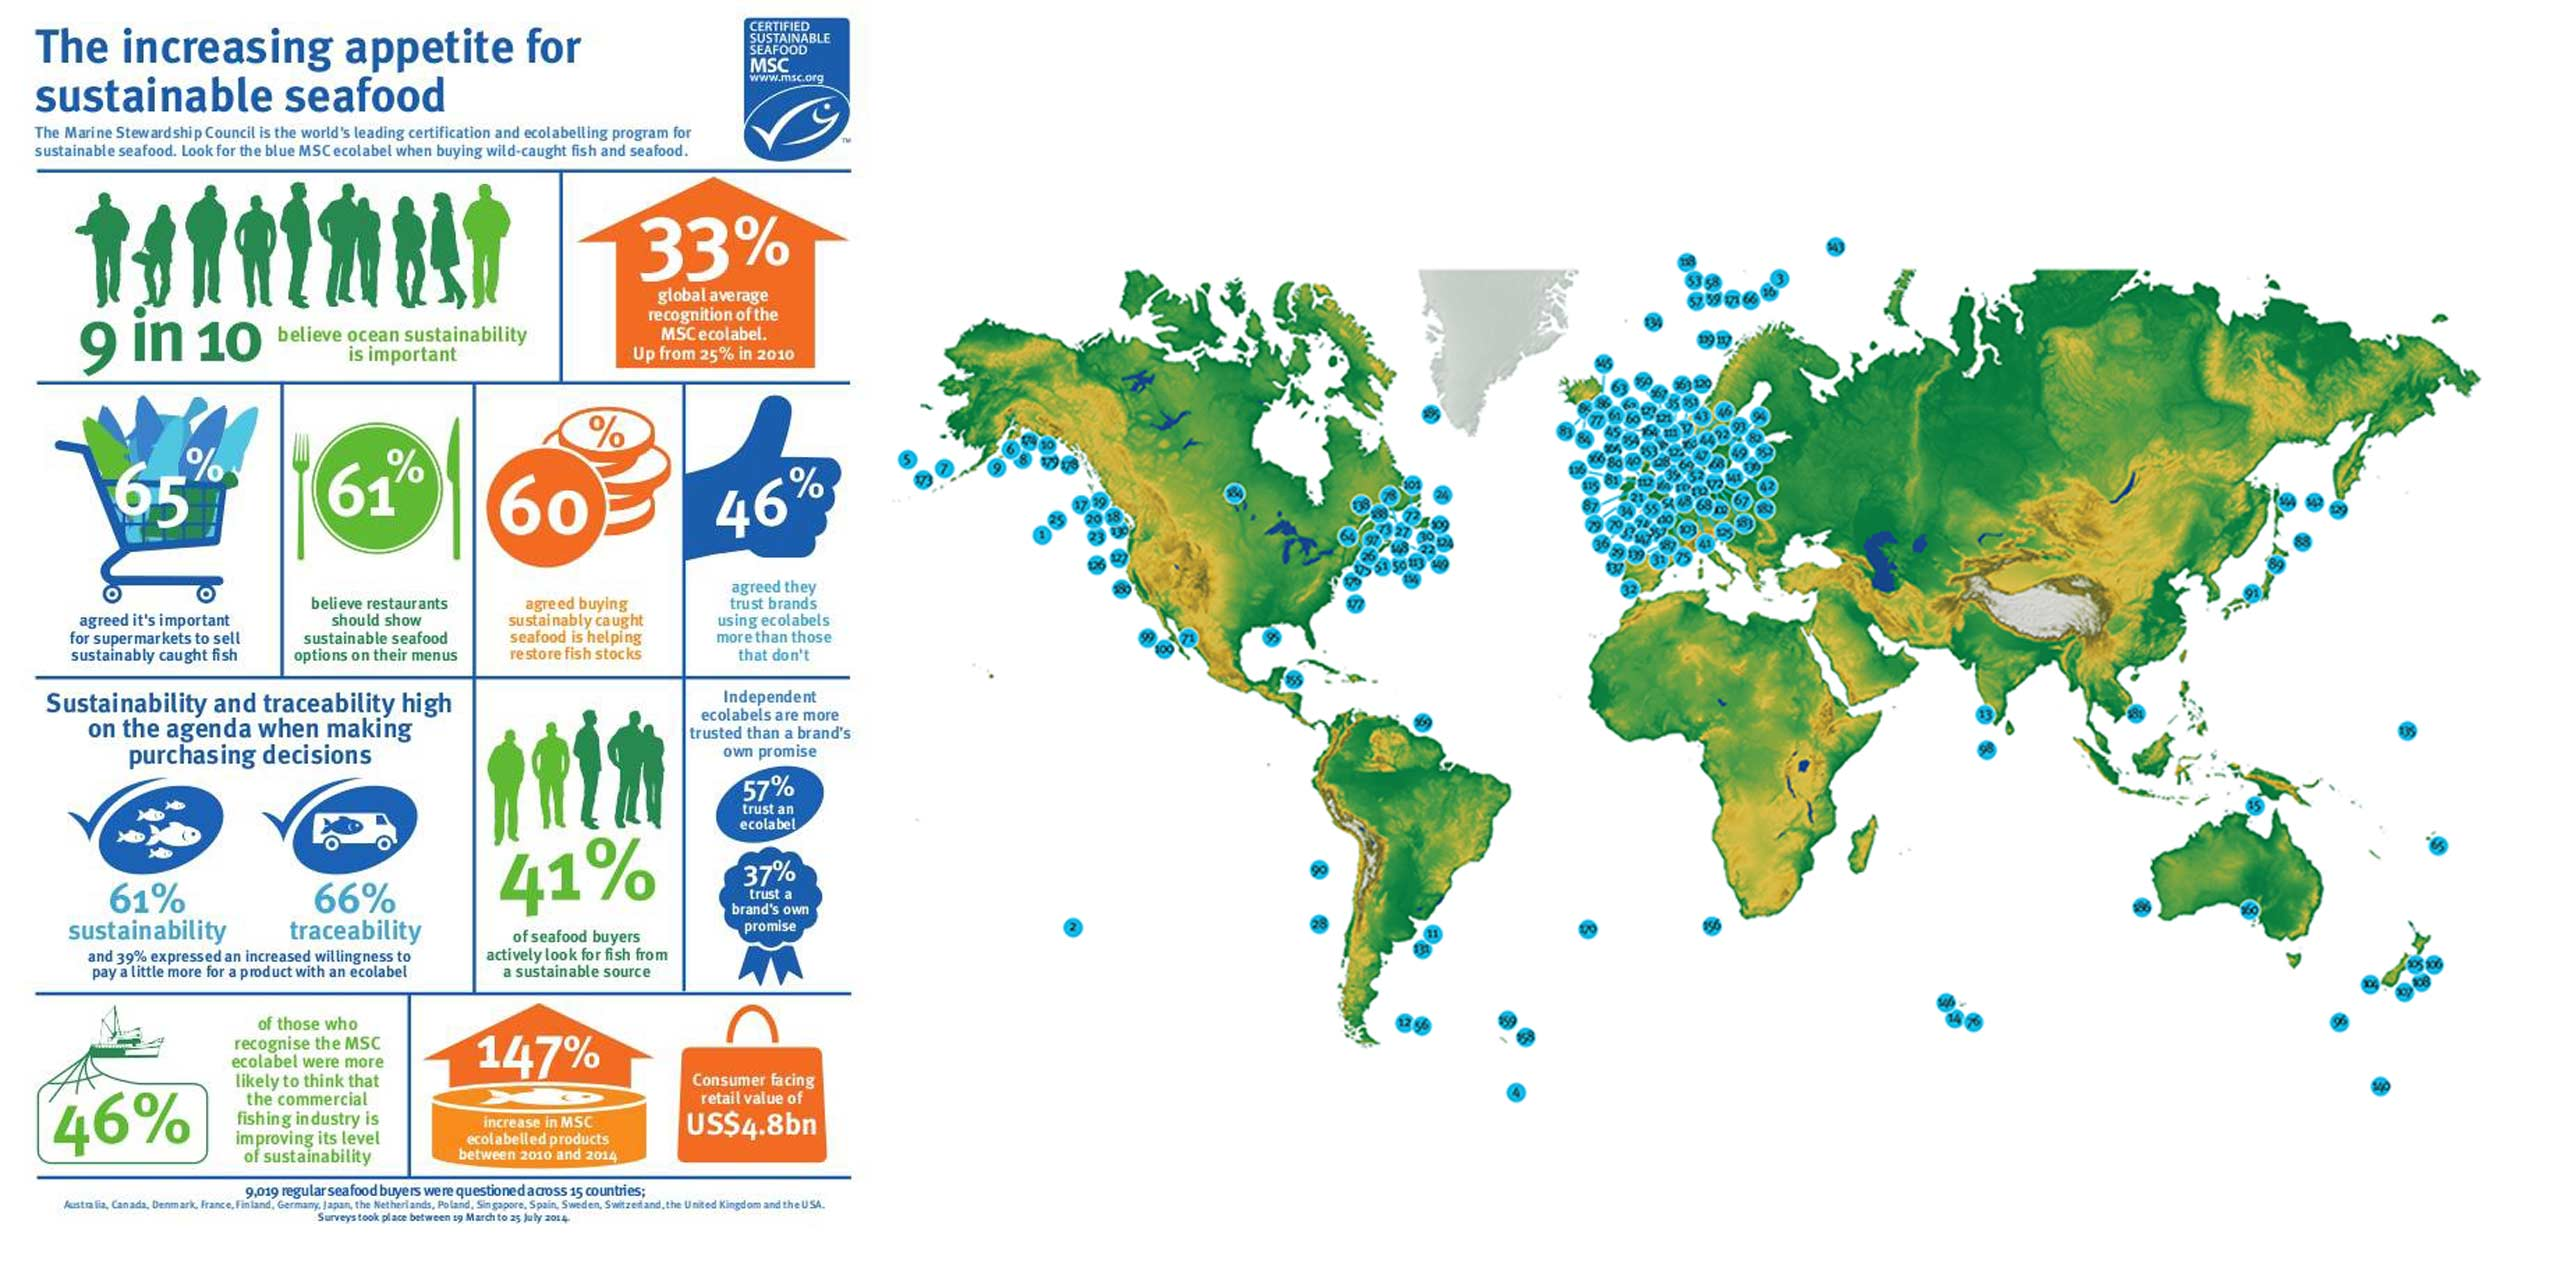 http://s12982.pcdn.co/wp-content/uploads/2014/02/marine-stewardship-council-sl4.jpg